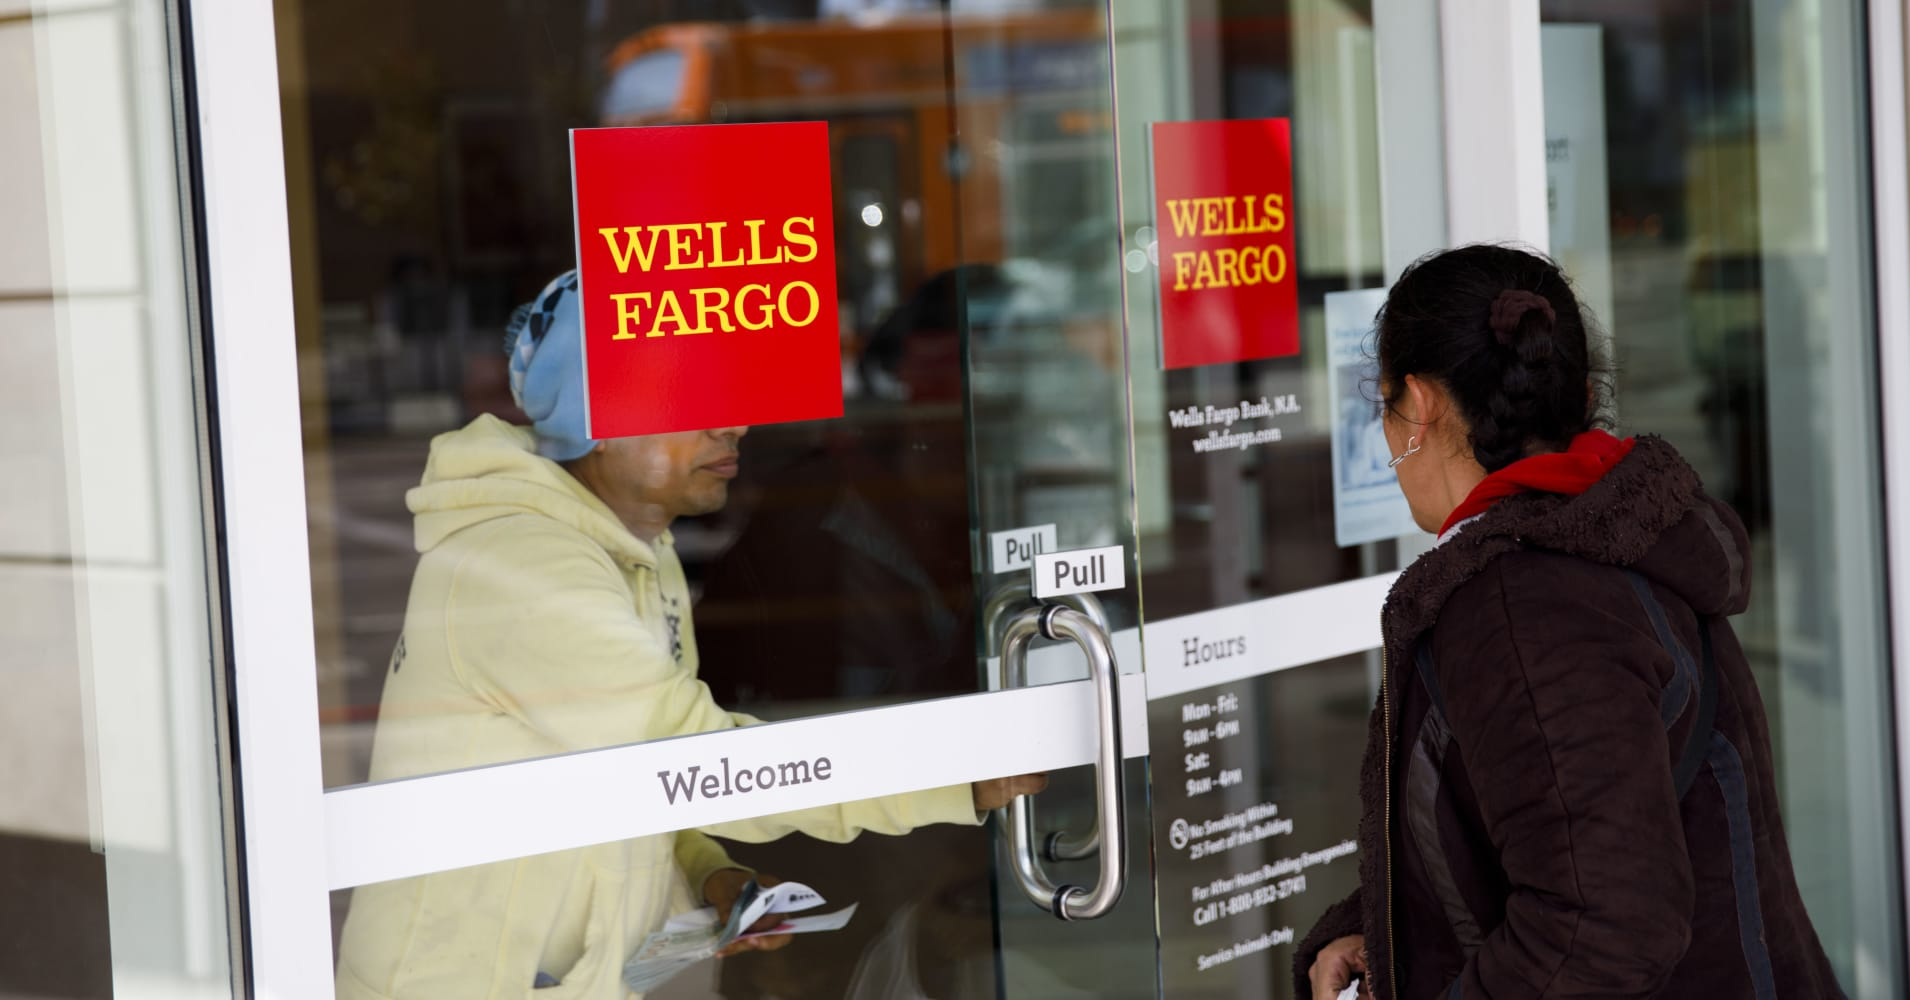 Citi upgrades Wells Fargo shares to buy: 'Issues are moving to rear view mirror'